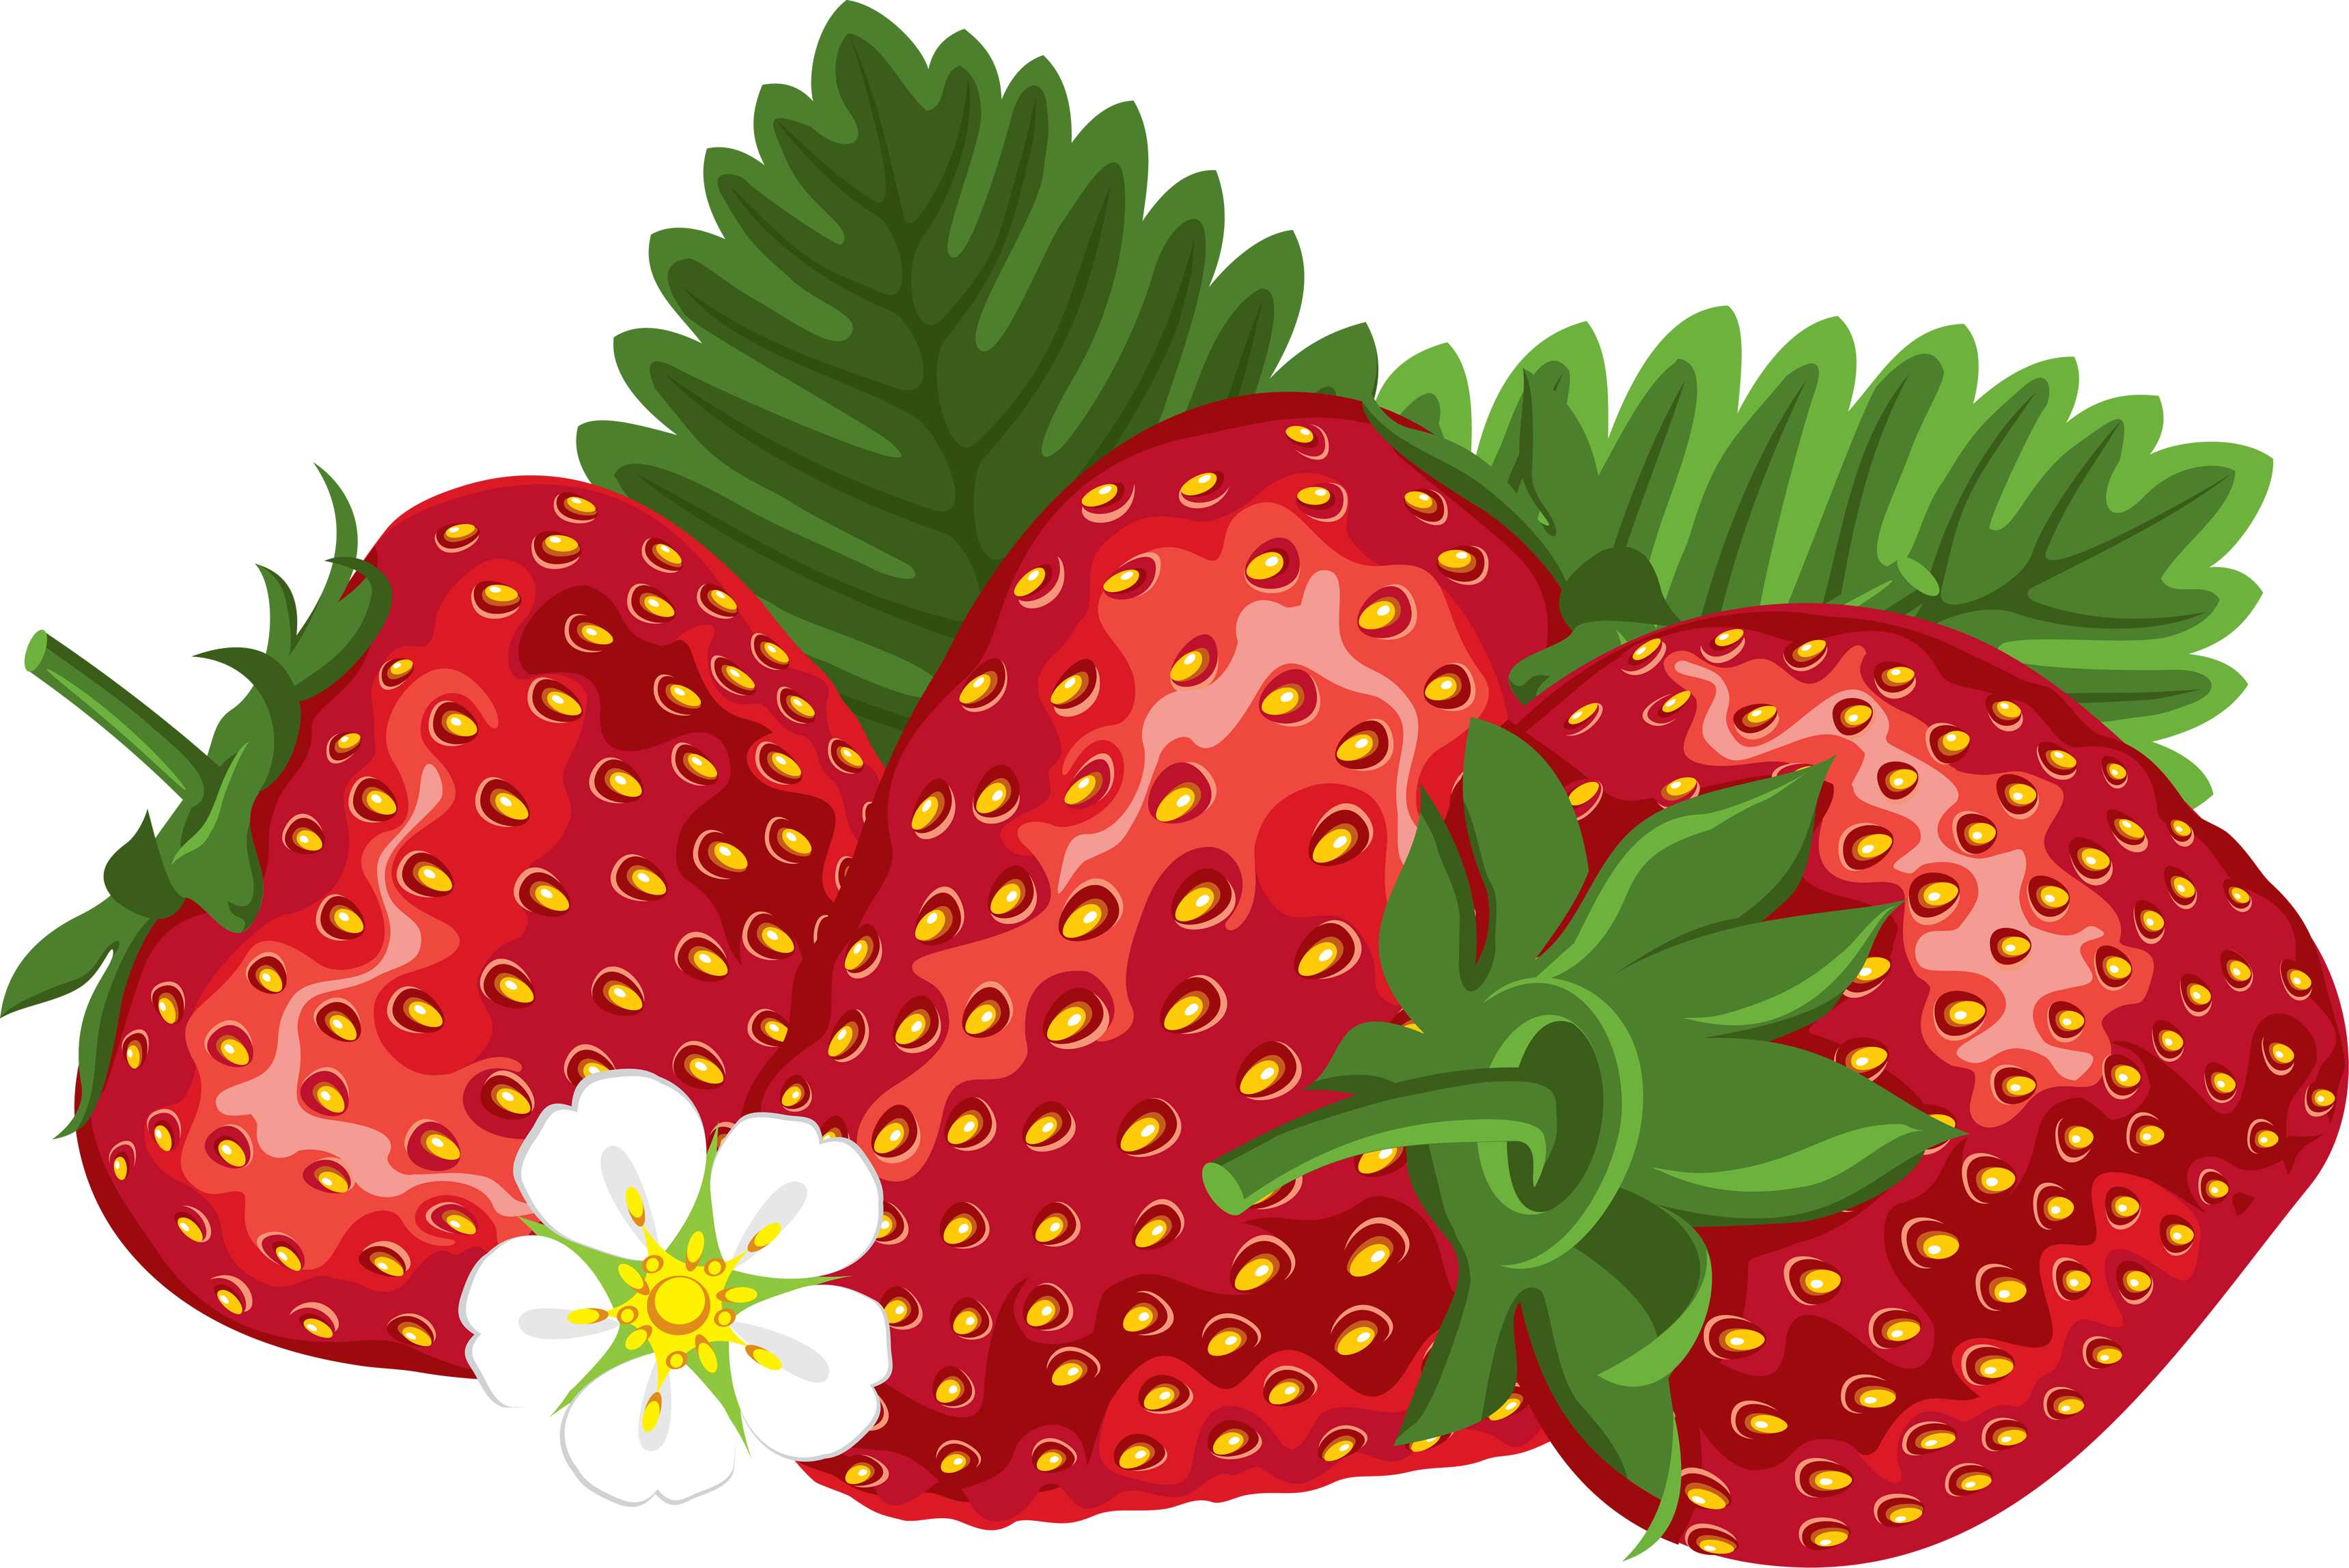 Strawberry PNG Image image #22931